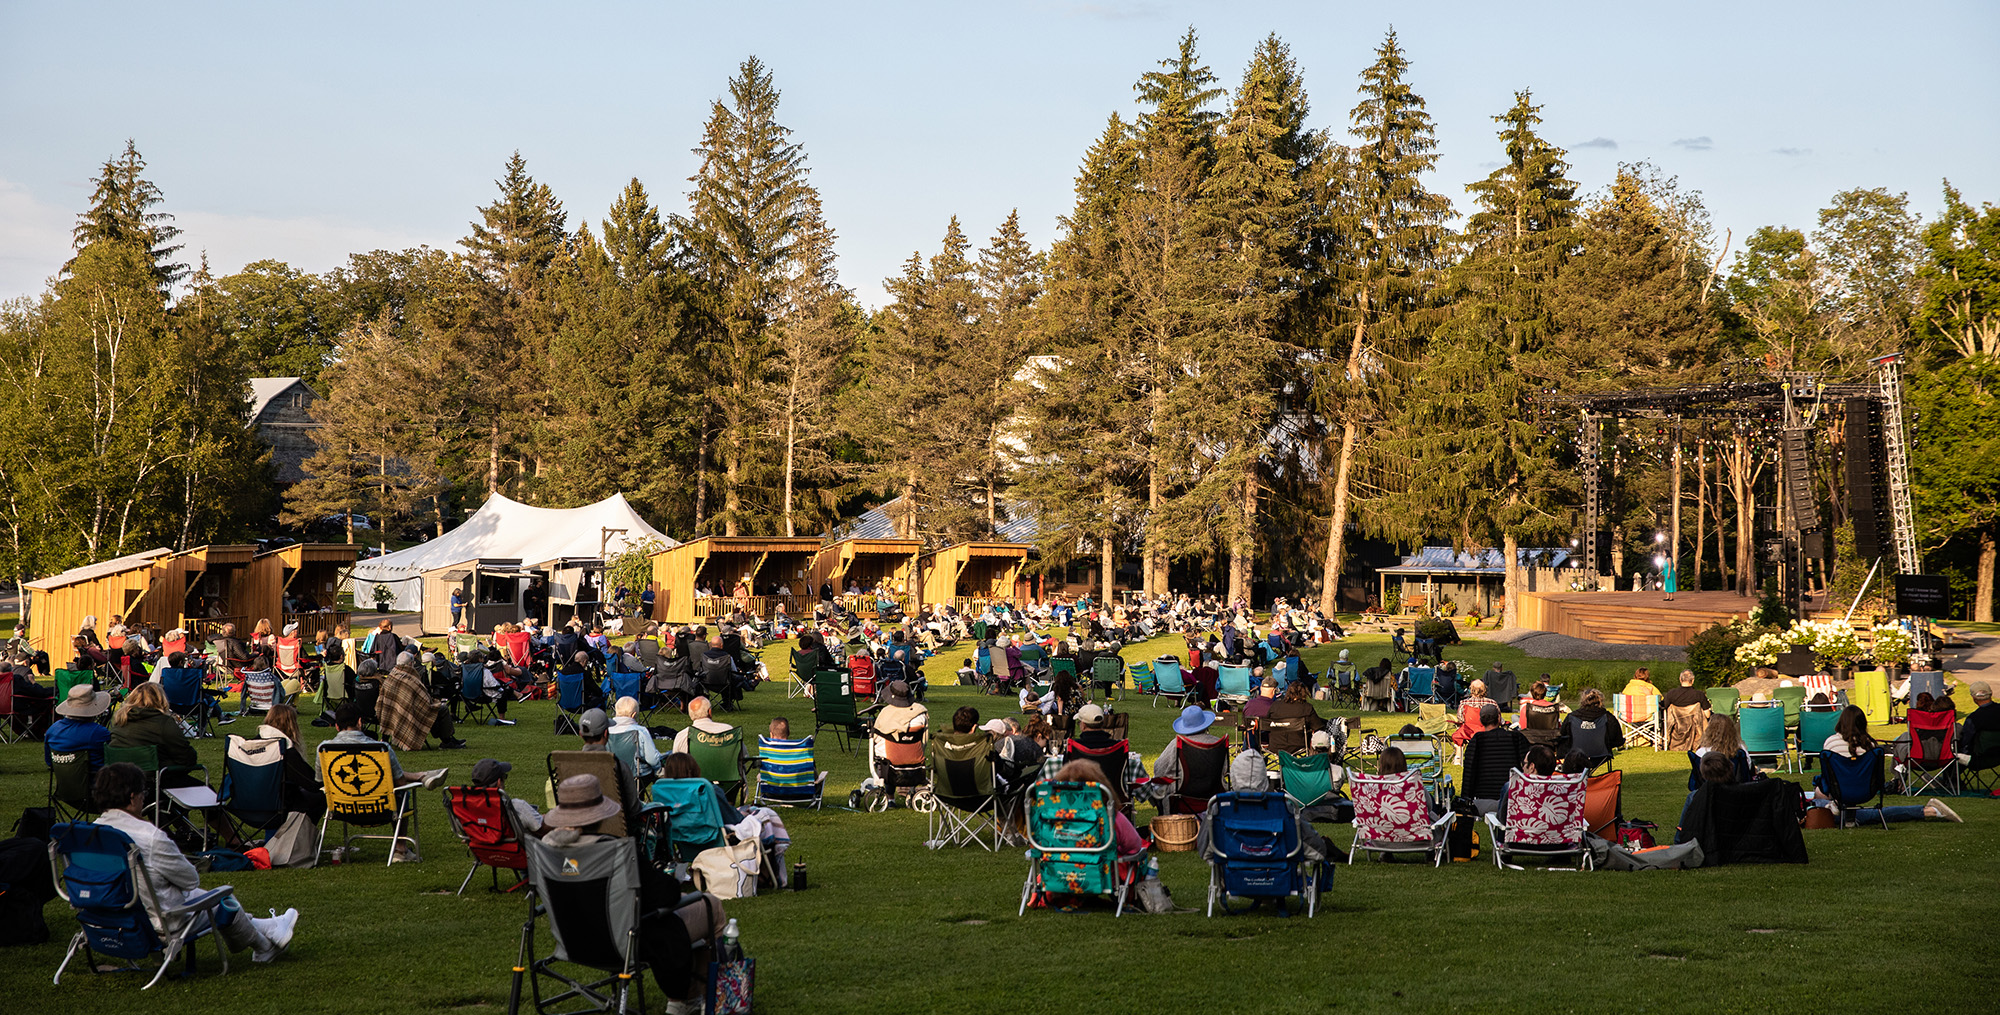 A photograph of The Glimmerglass Festival lawn; the lawn is filled with people sitting in different colored lawn chairs; a stage is seen off to the right.